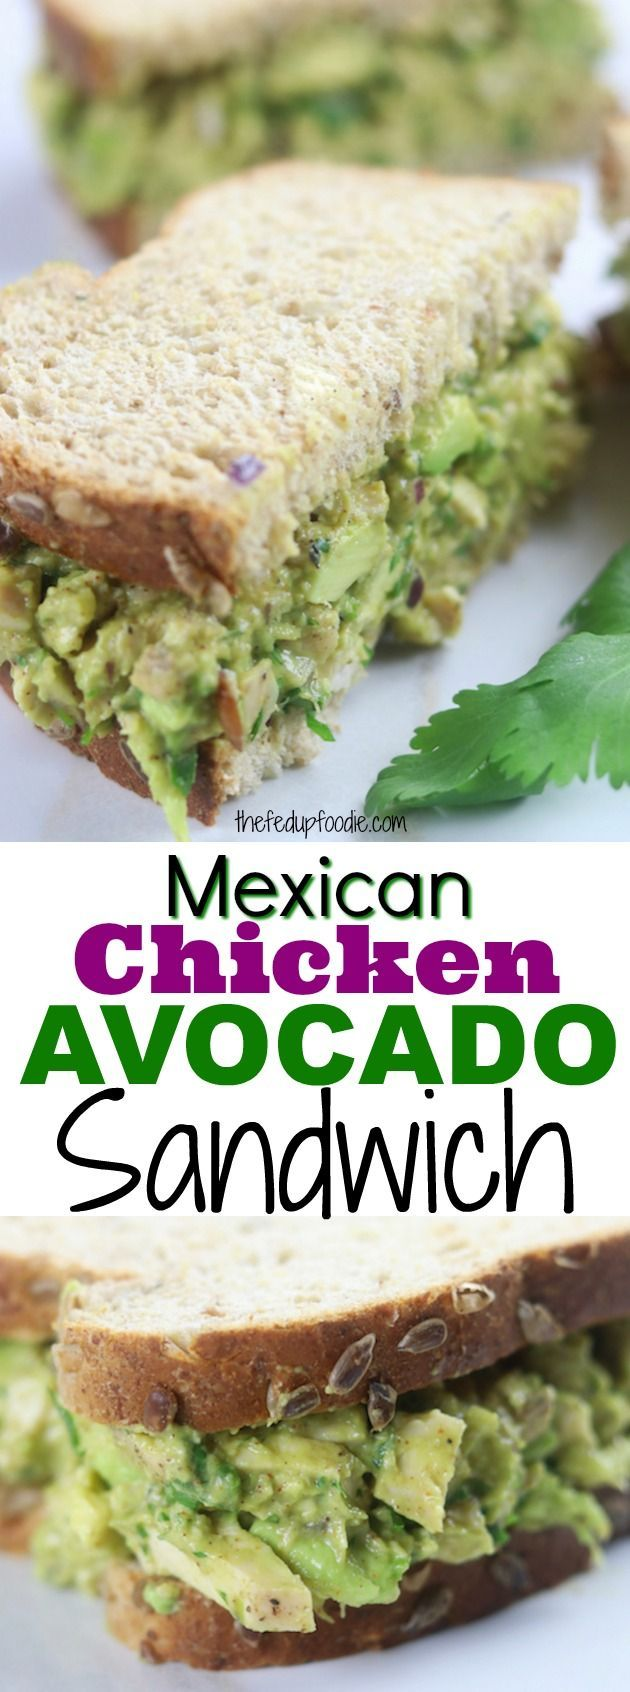 How To Make The Best Avocado Chicken Sandwich